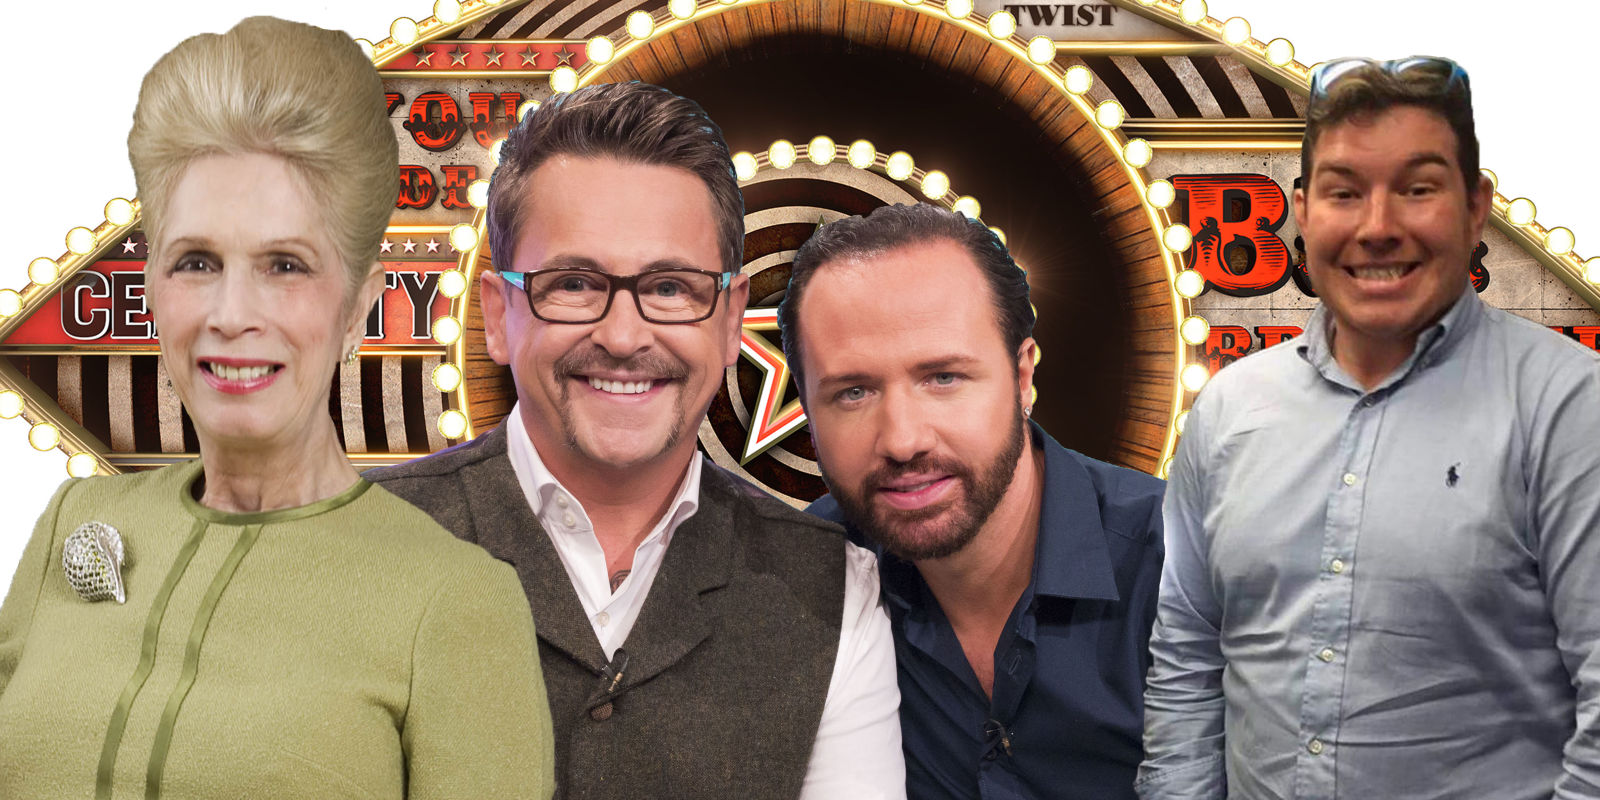 CBB 2017 had its worst-ever launch show ratings - Digital Spy